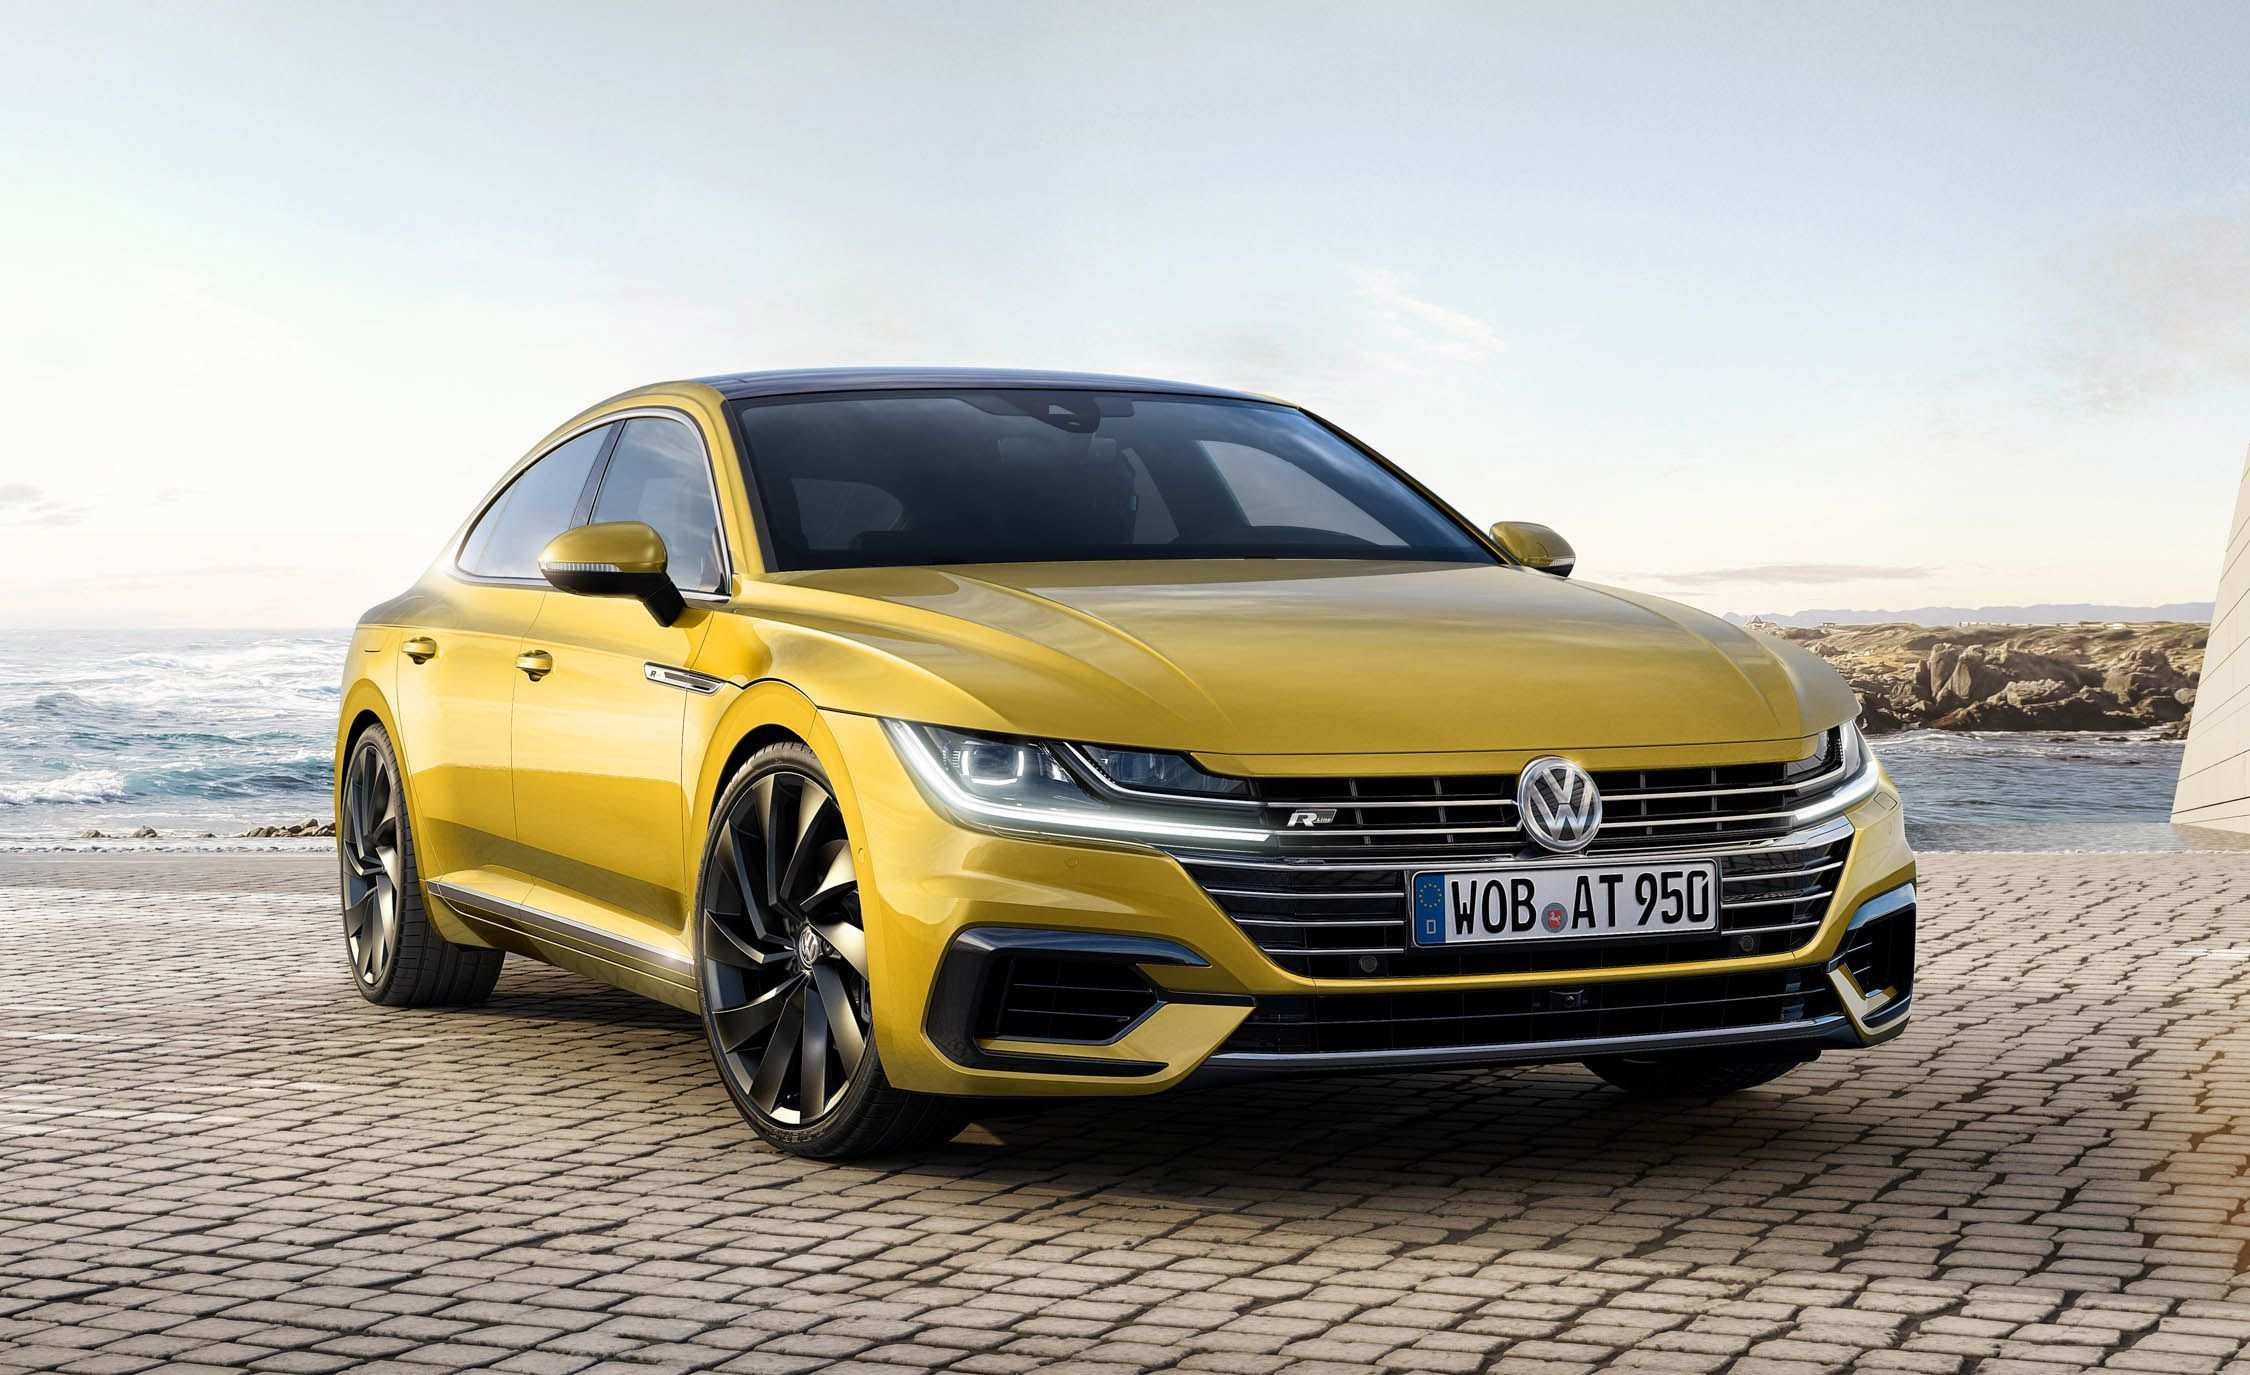 61 Concept of Best Volkswagen Lineup 2019 Review And Release Date Review with Best Volkswagen Lineup 2019 Review And Release Date